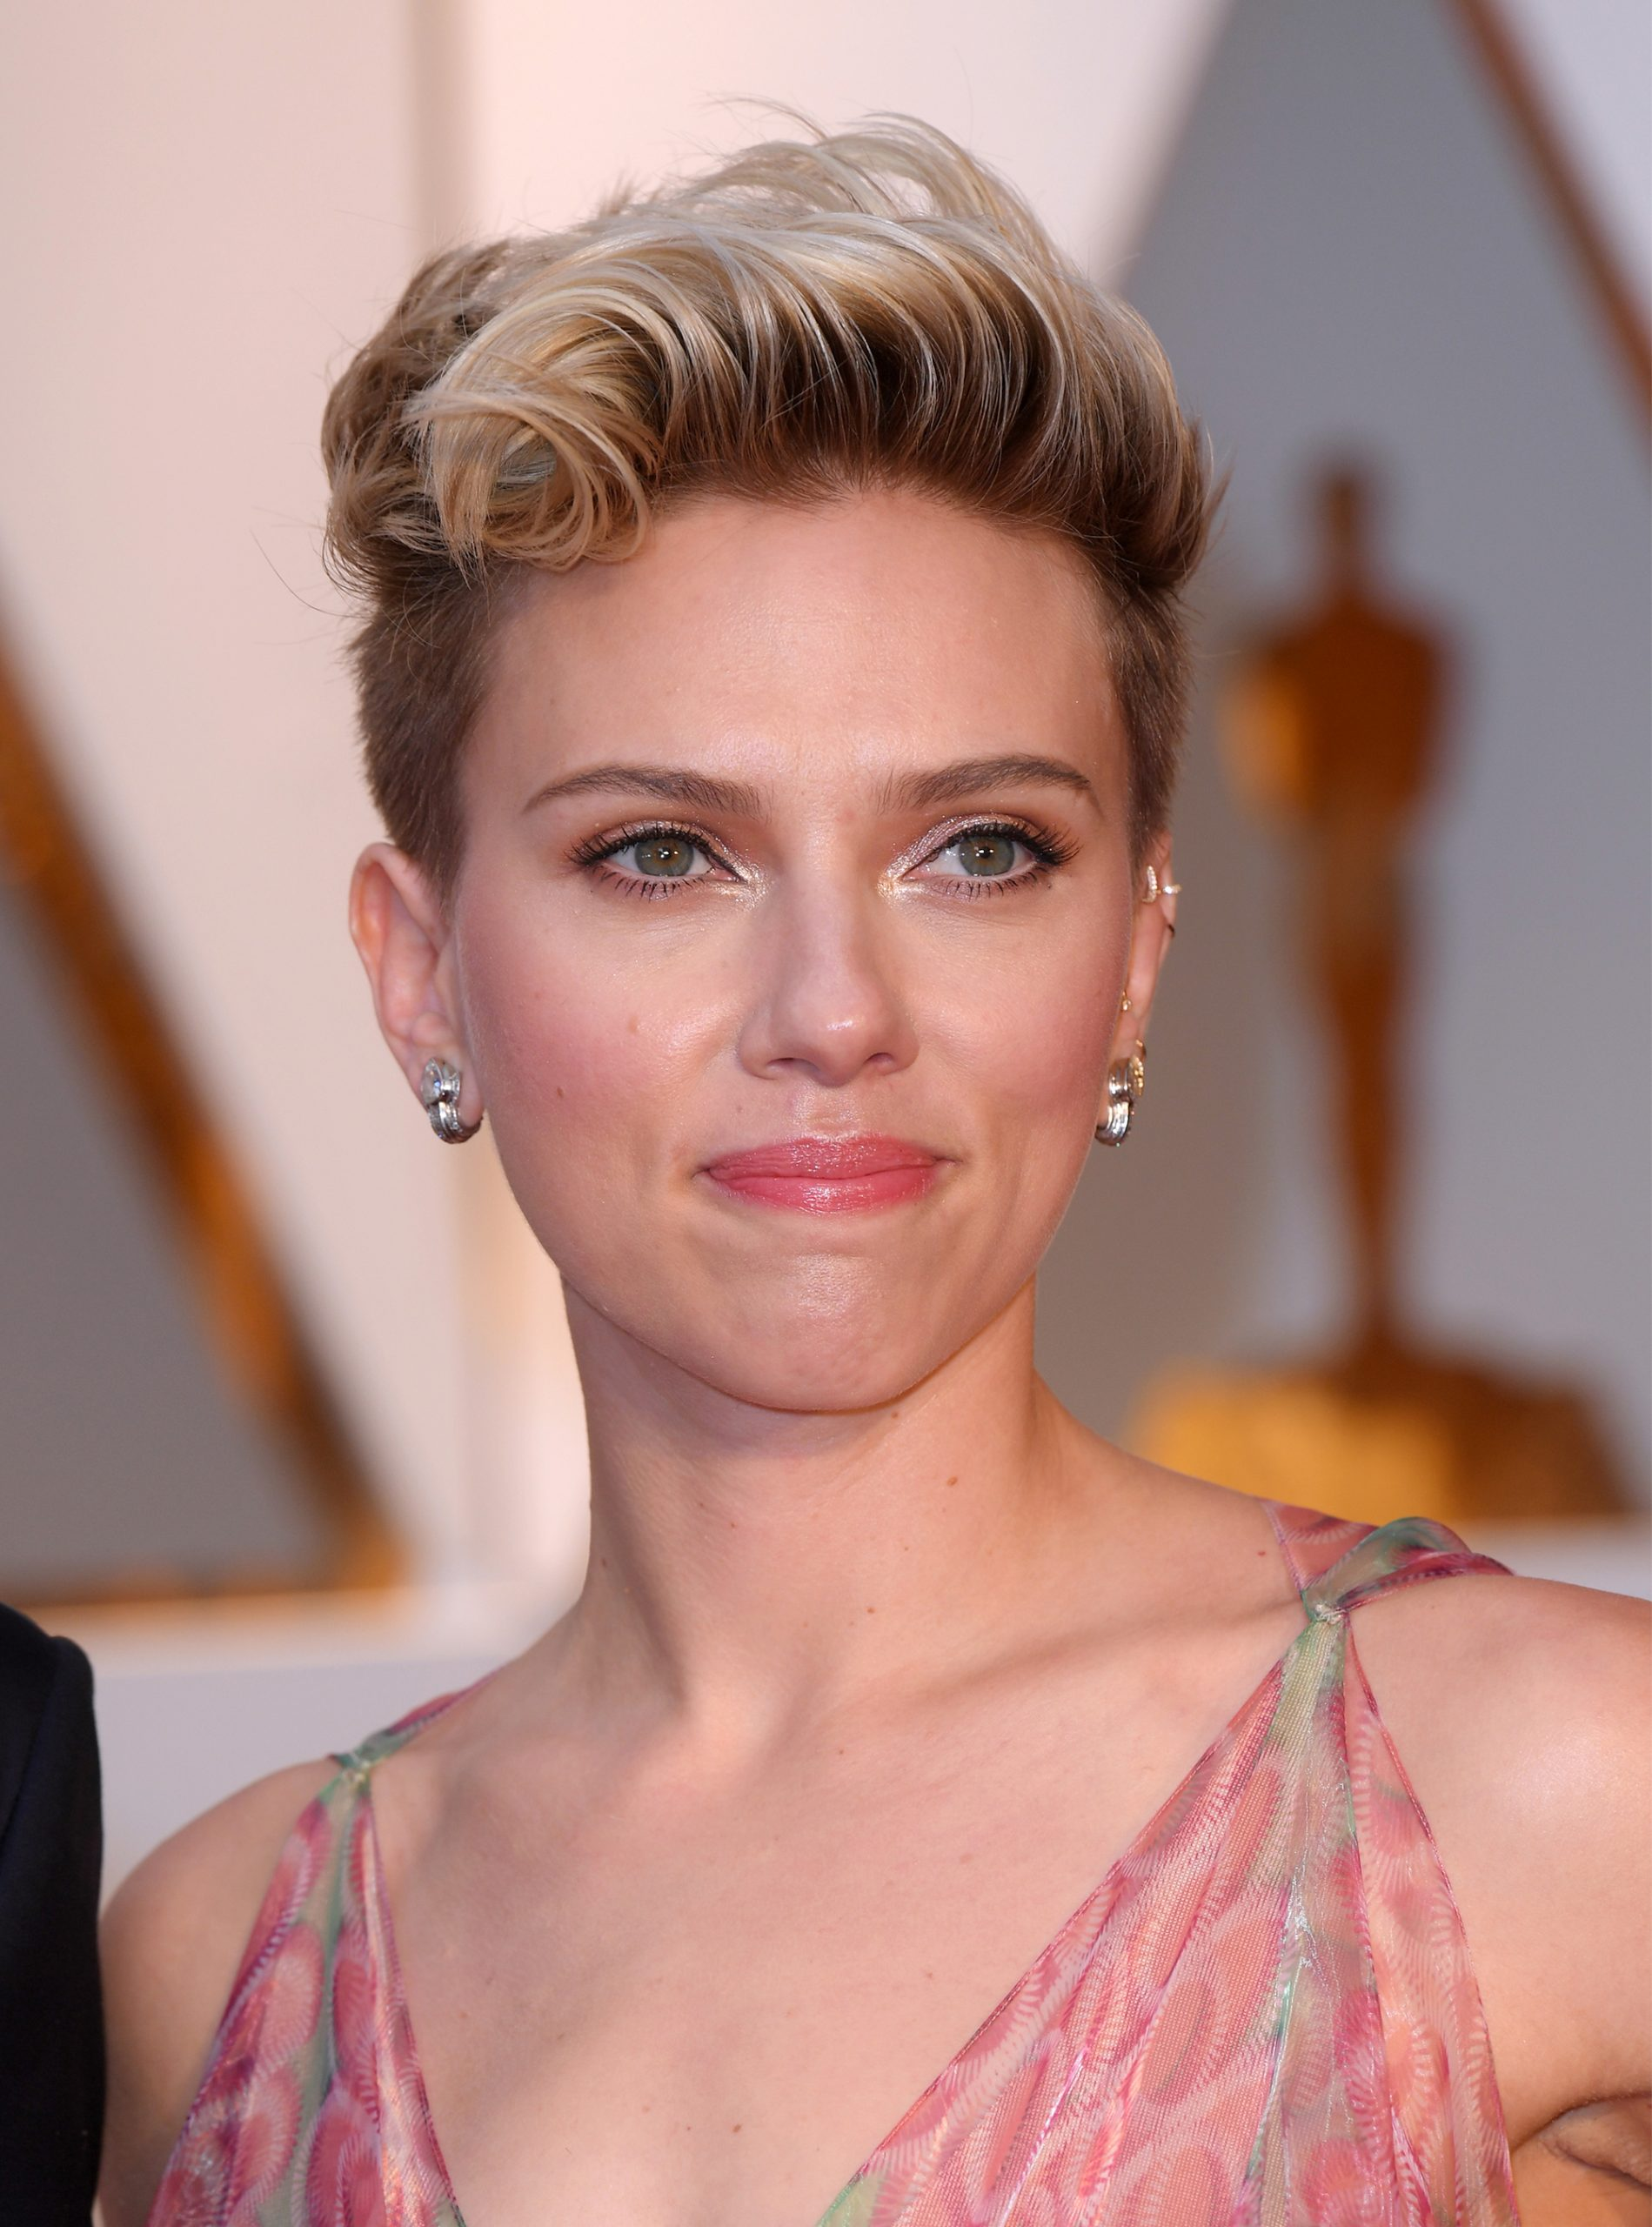 The Short Hair Trend On The Oscars Red Carpet